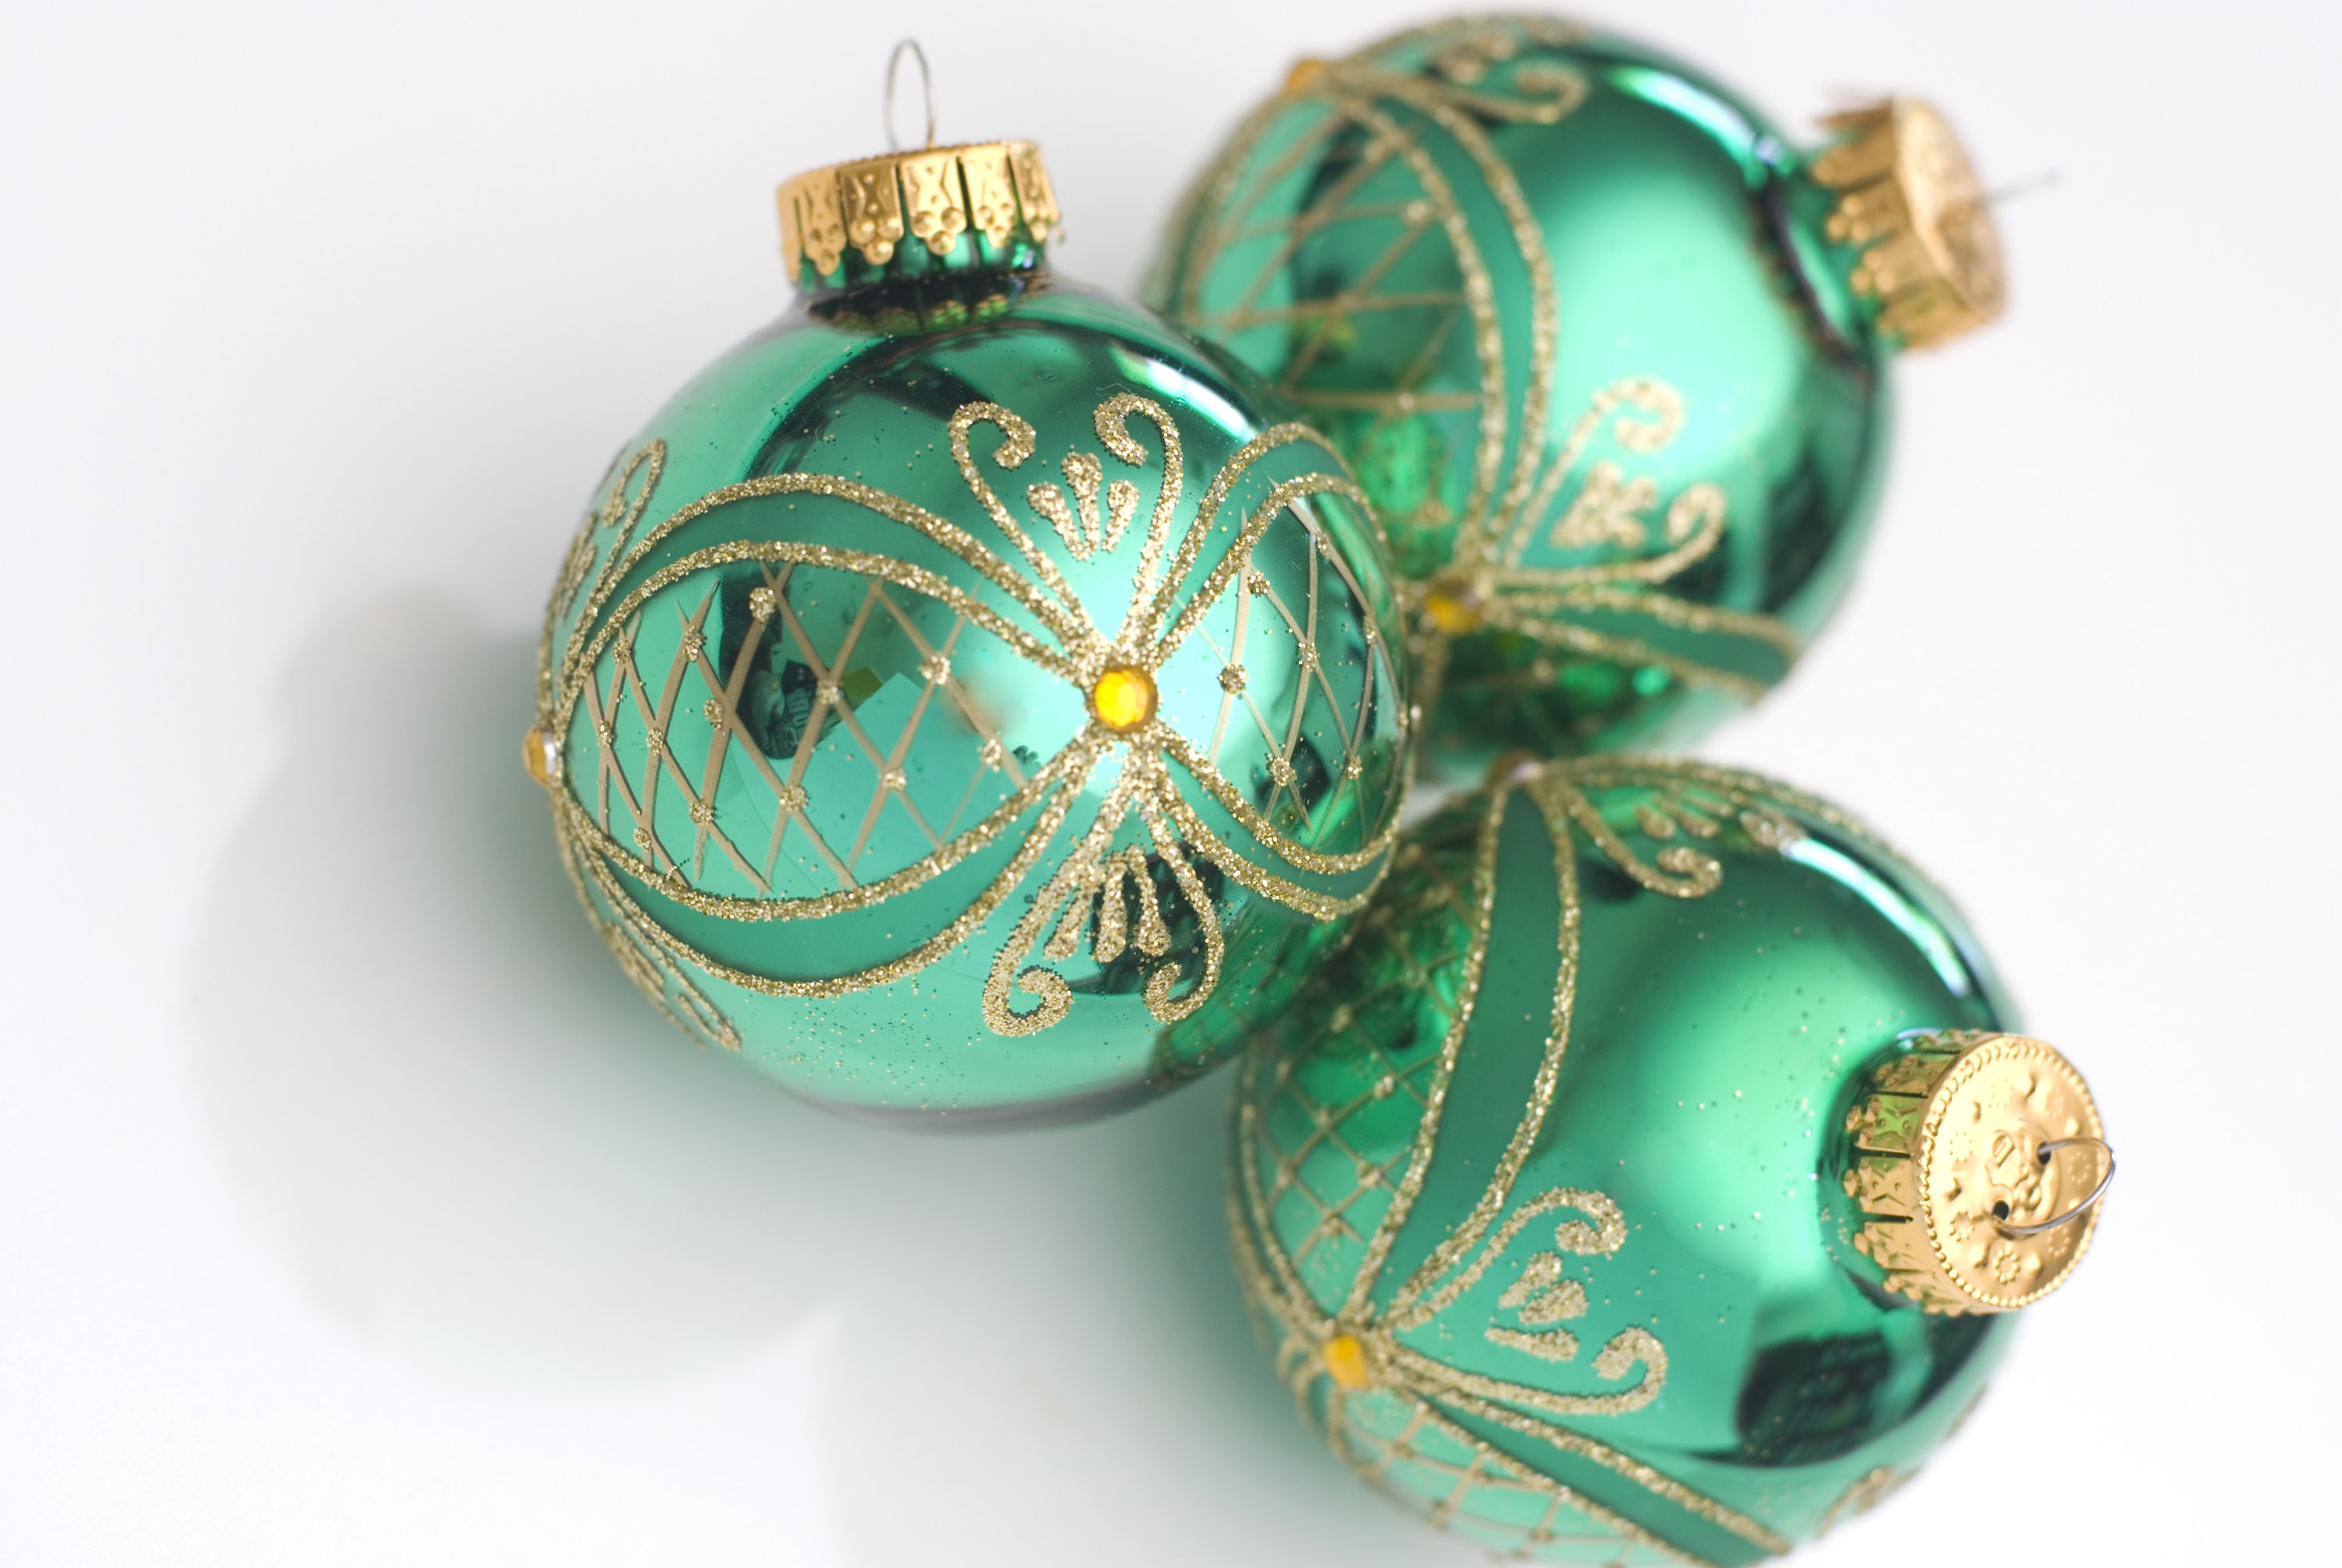 three green glass christmas ornaments on a plain white background narrow depth of field image